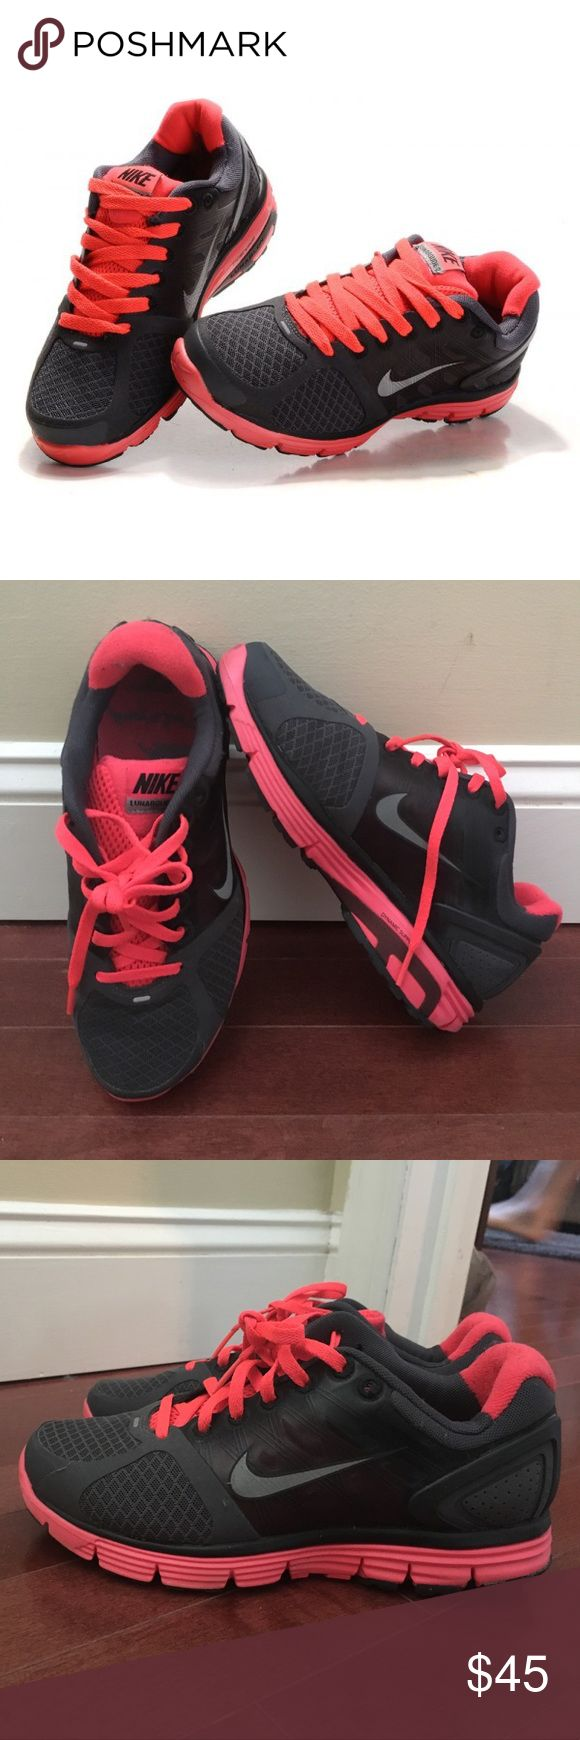 Nike Lunarglide 2 Sneakers Nike Lunarglide 2 Sneakers in black and hot pink.  Good condition. Nike Shoes Sneakers